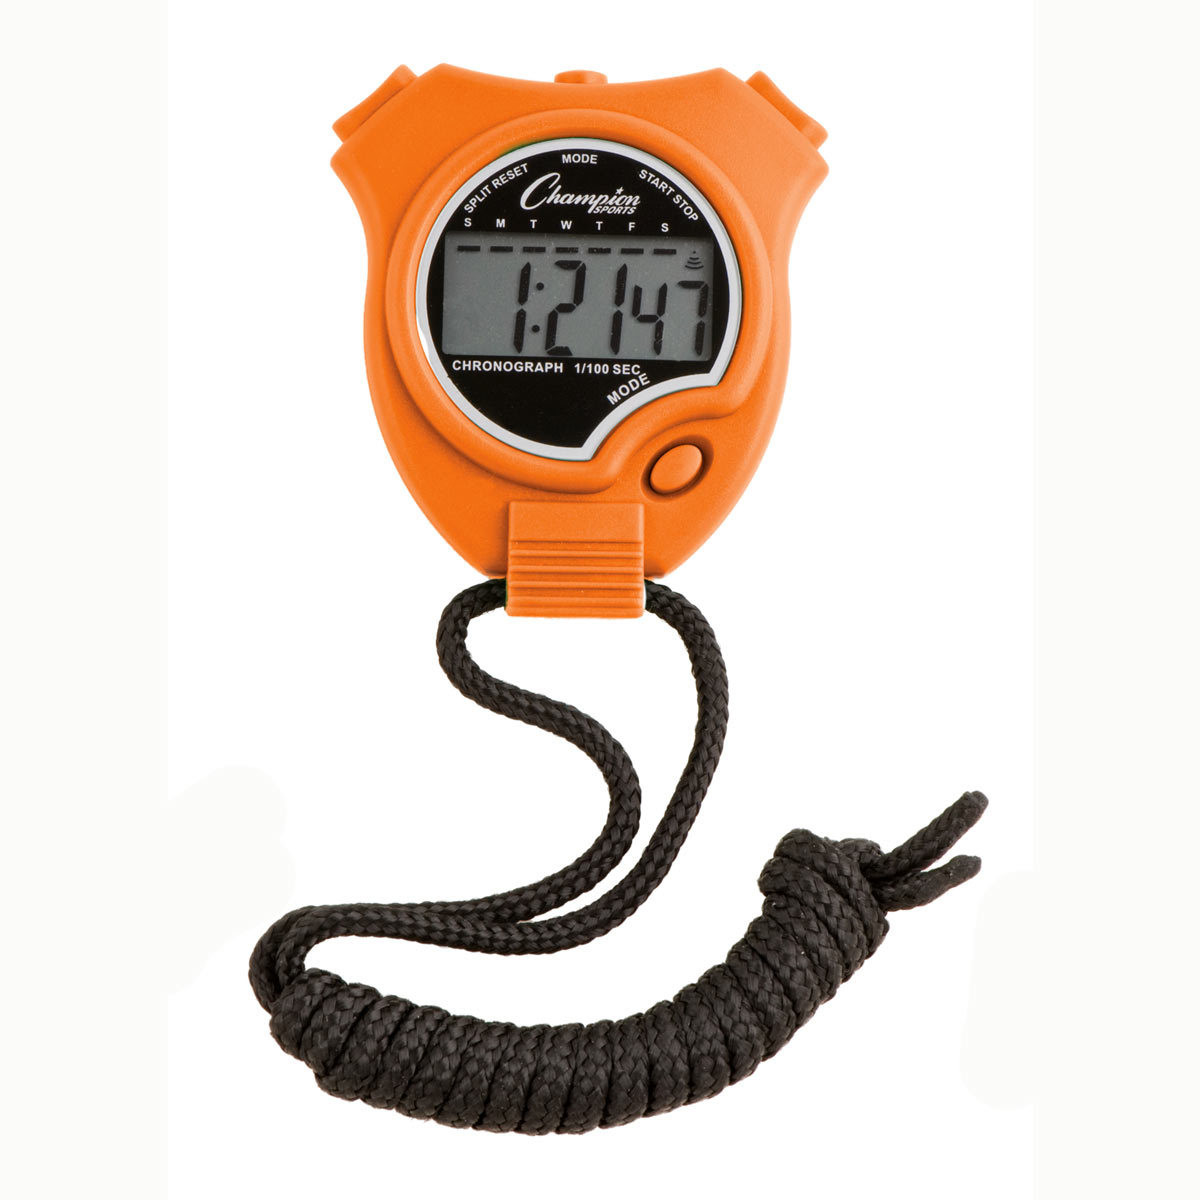 Champion Sports 910 Stopwatch and Timer Orange